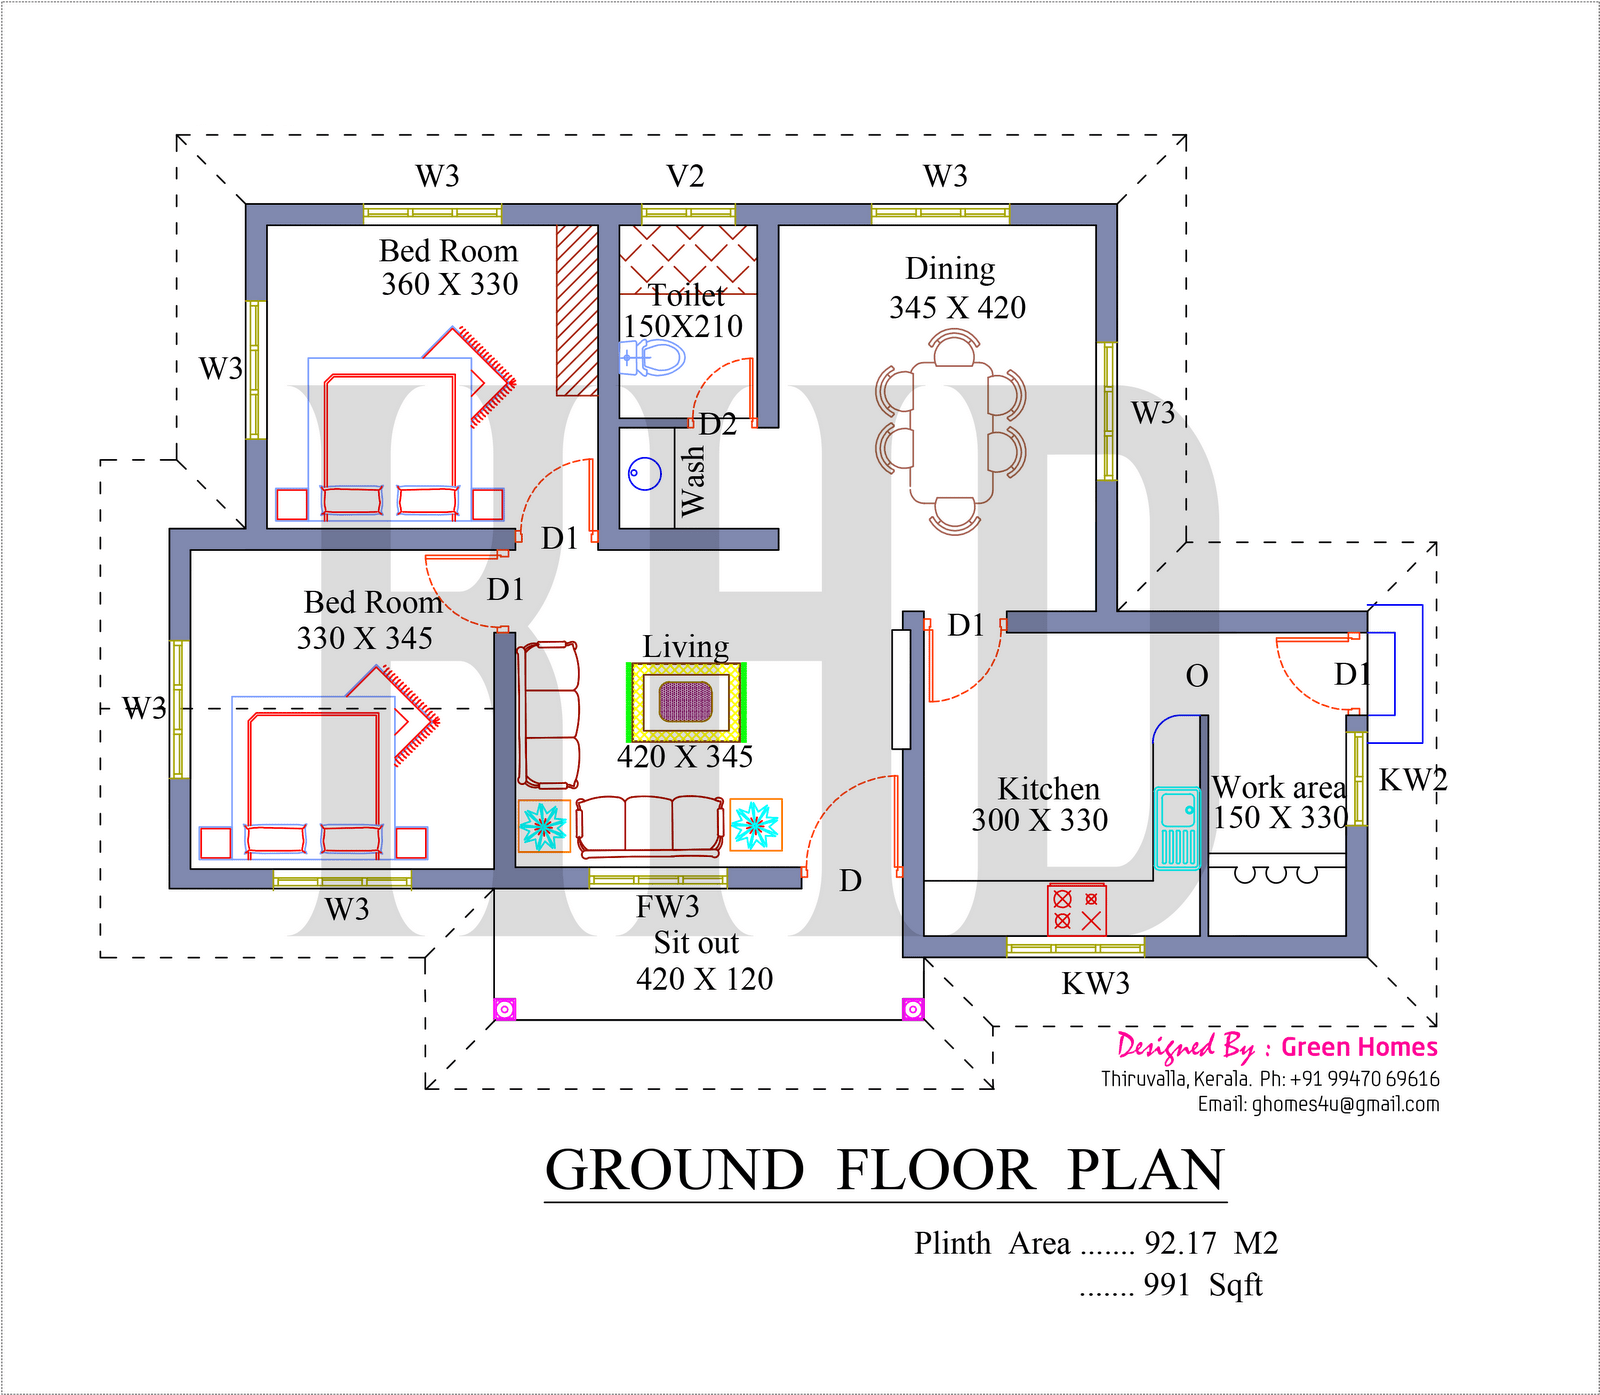 Low cost house in kerala with plan photos 991 sq ft khp for House designs kerala style low cost